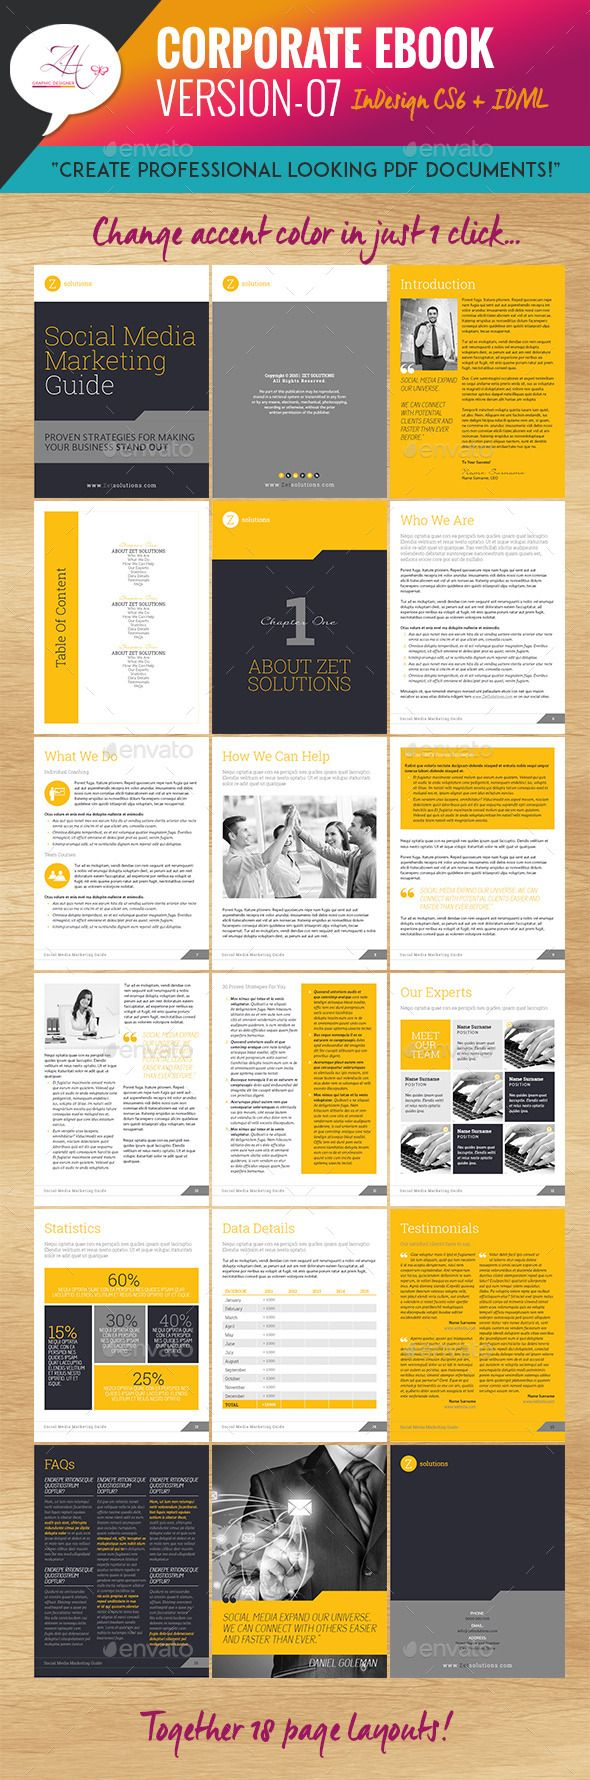 corporate ebook template design download http graphicriver net